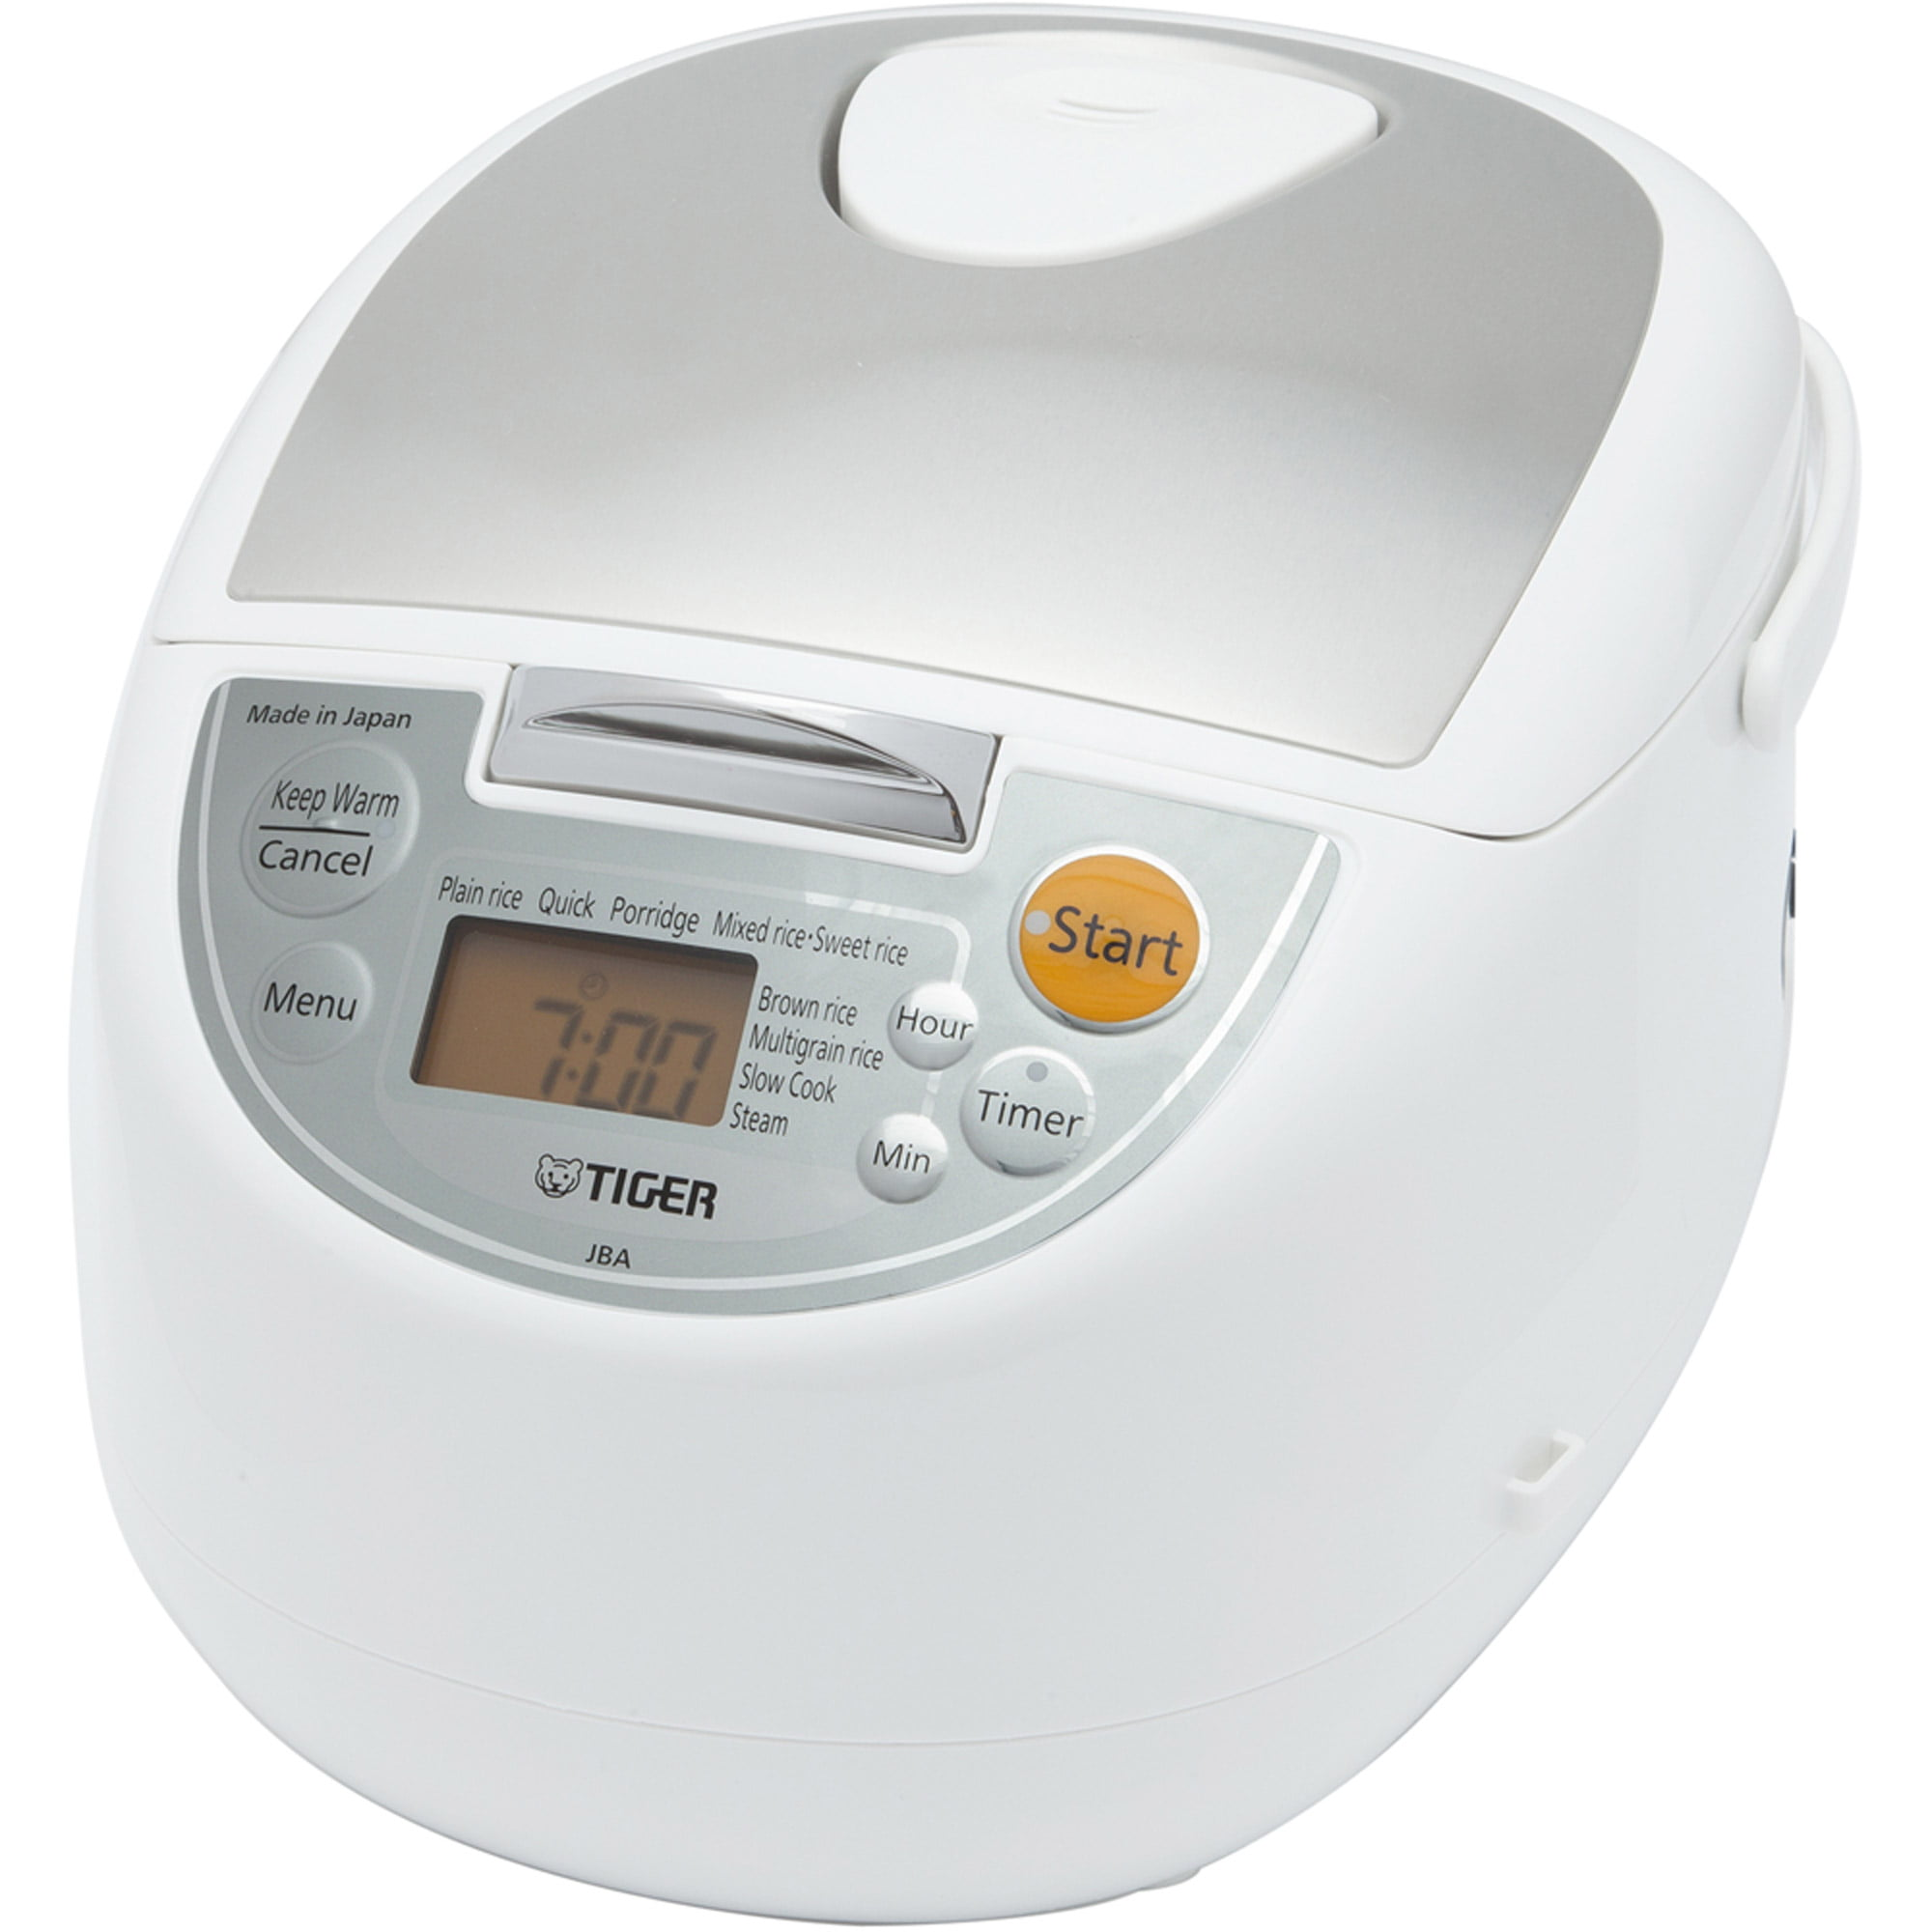 Tiger rice cooker 5 5 Go pot pressure IH urban black recipe with cooked